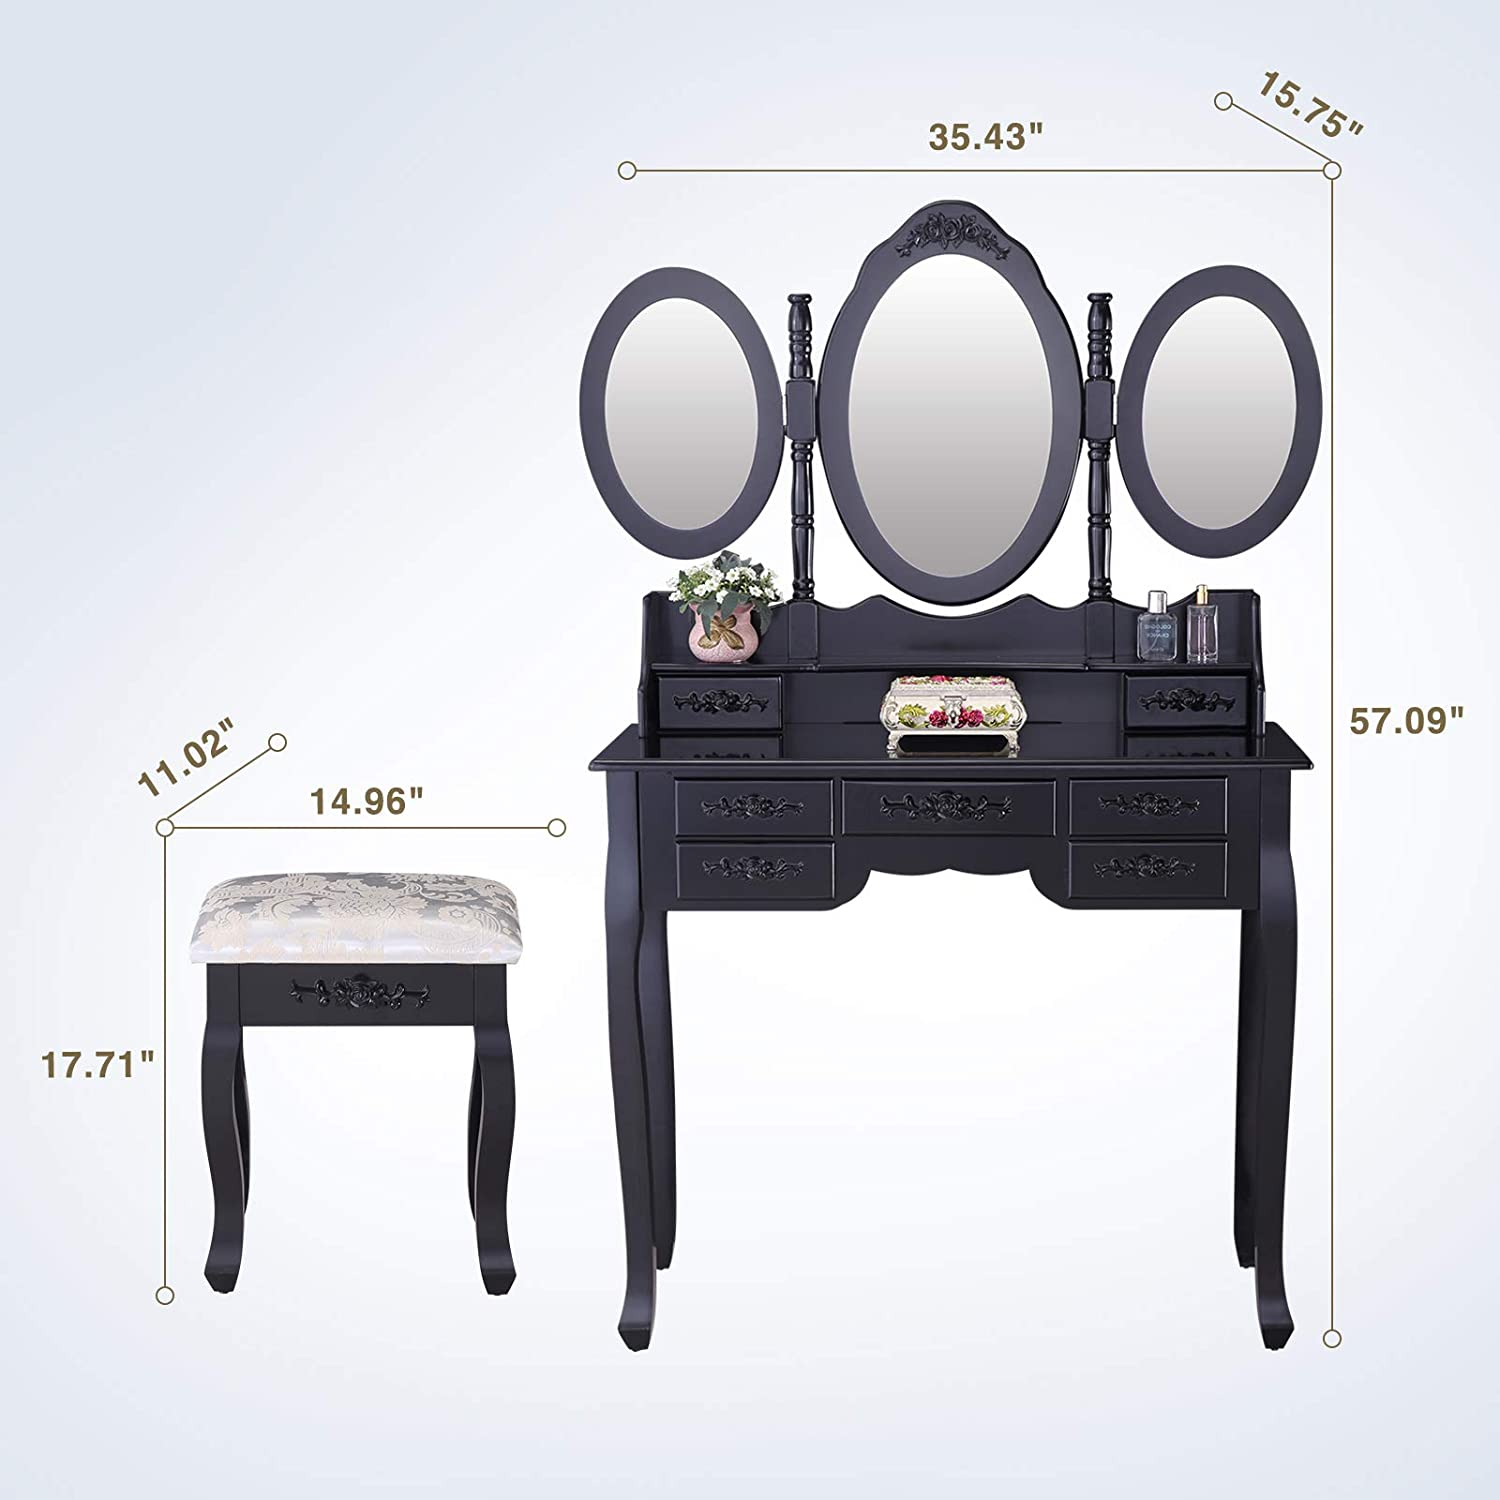 Mecor Vanity Table Set with Oval Mirror Makeup Dressing Table 7 Drawers and Cushioned Stool,Black 1030303500#DFMN-N